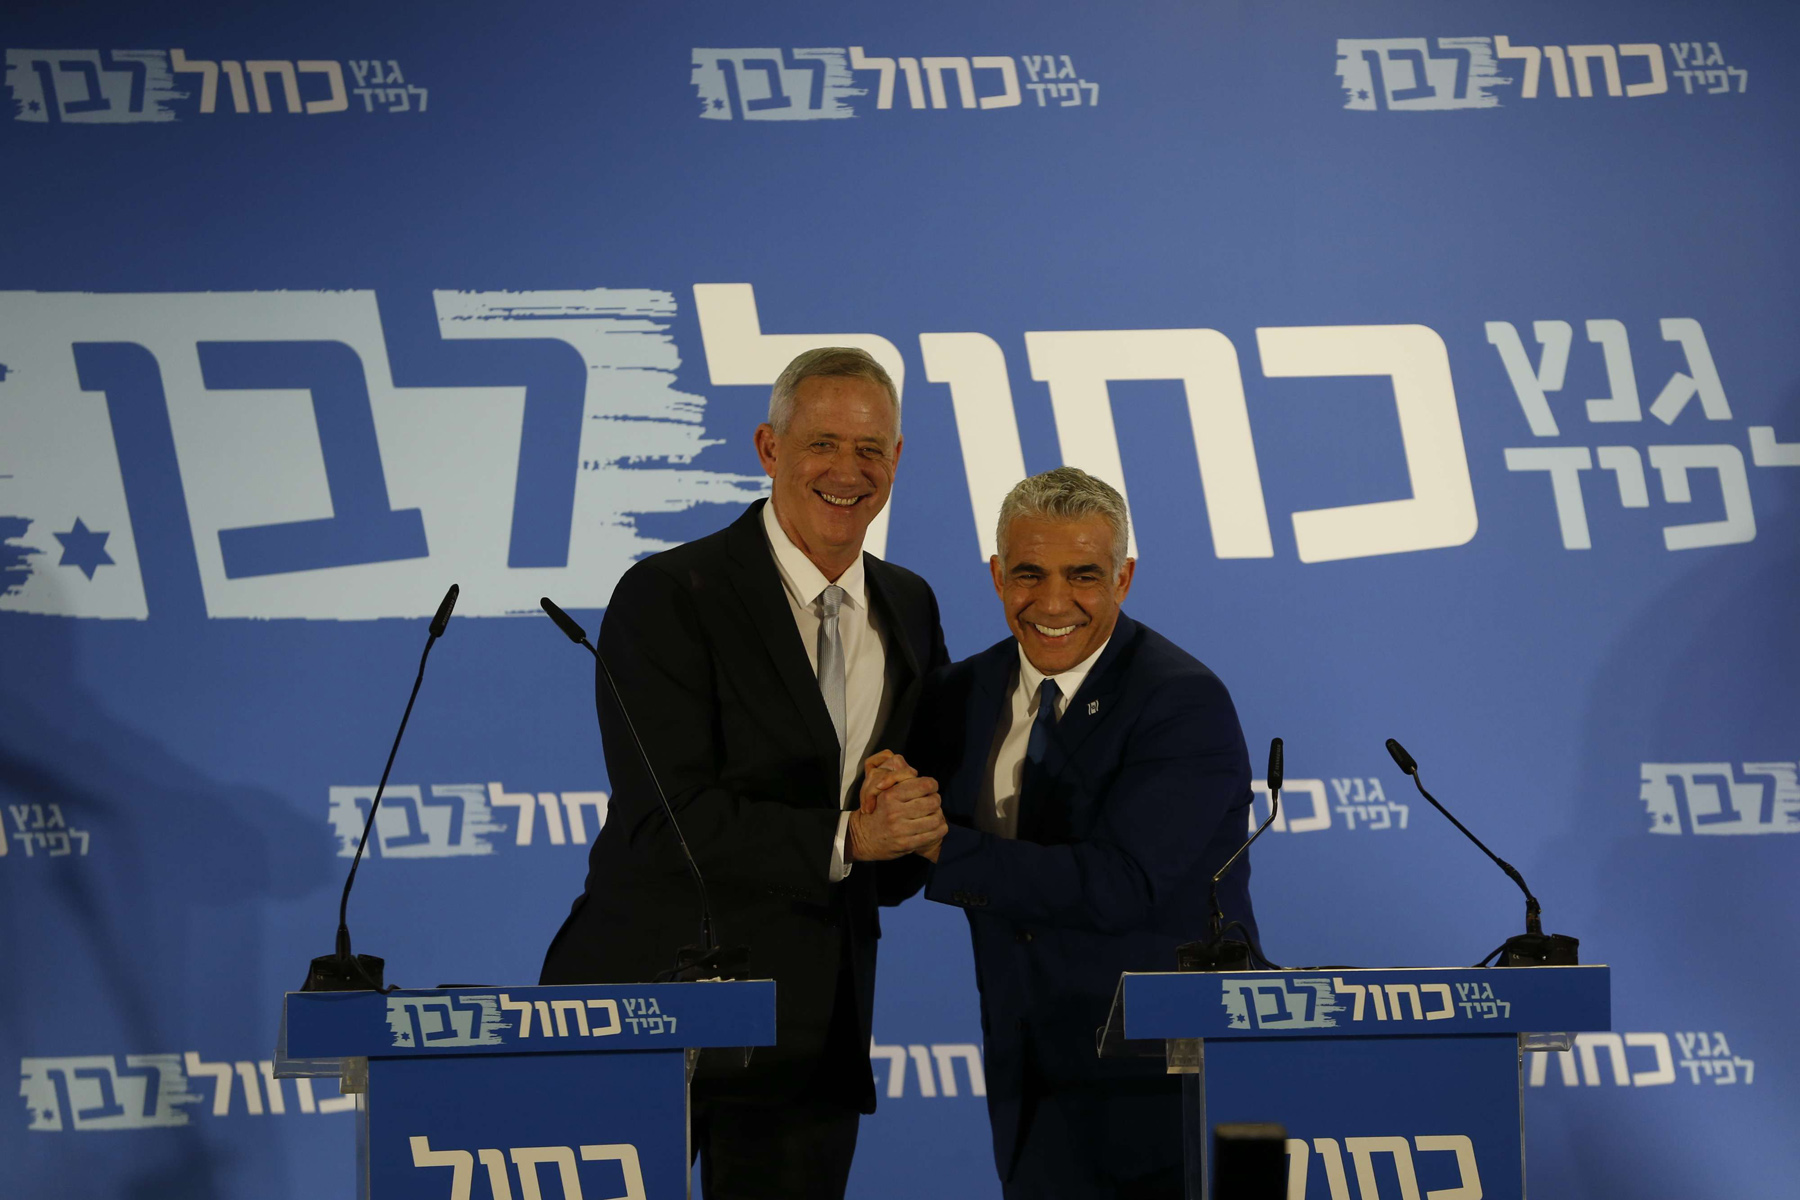 Retired Israeli military chief Benny Gantz (L) smiles with Yair Lapid,  head of the Yesh Atid party, as they launch a joint list for the upcoming Israeli elections in Tel Aviv, February 21. (AP)